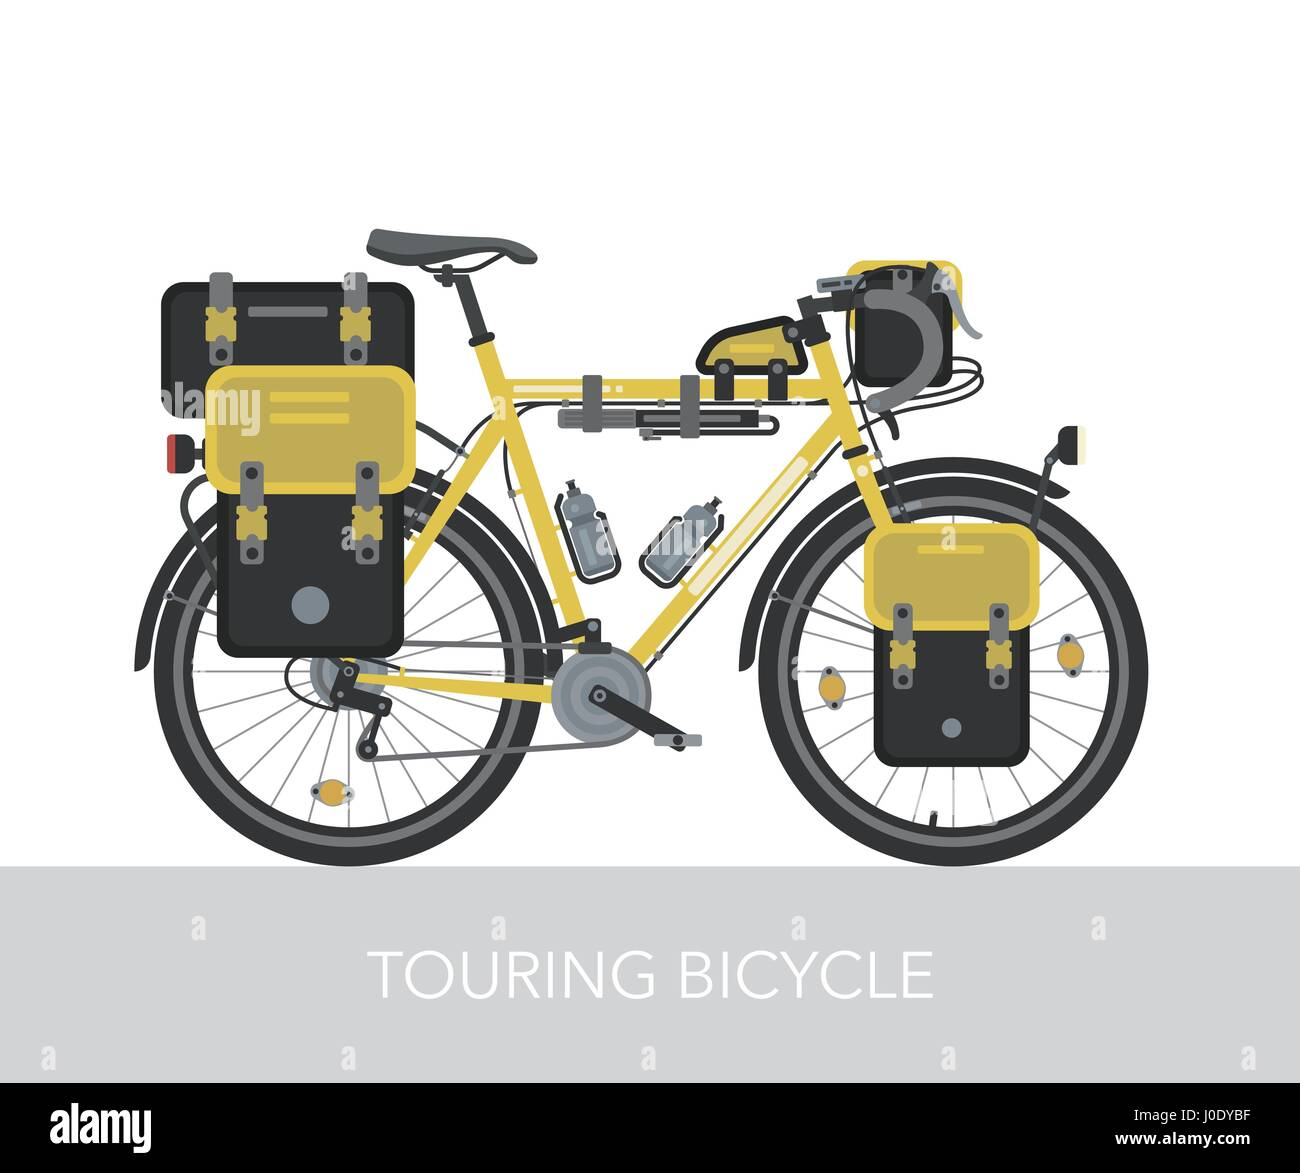 Configuration Of City, Touring Or Trekking Bicycle. Bike